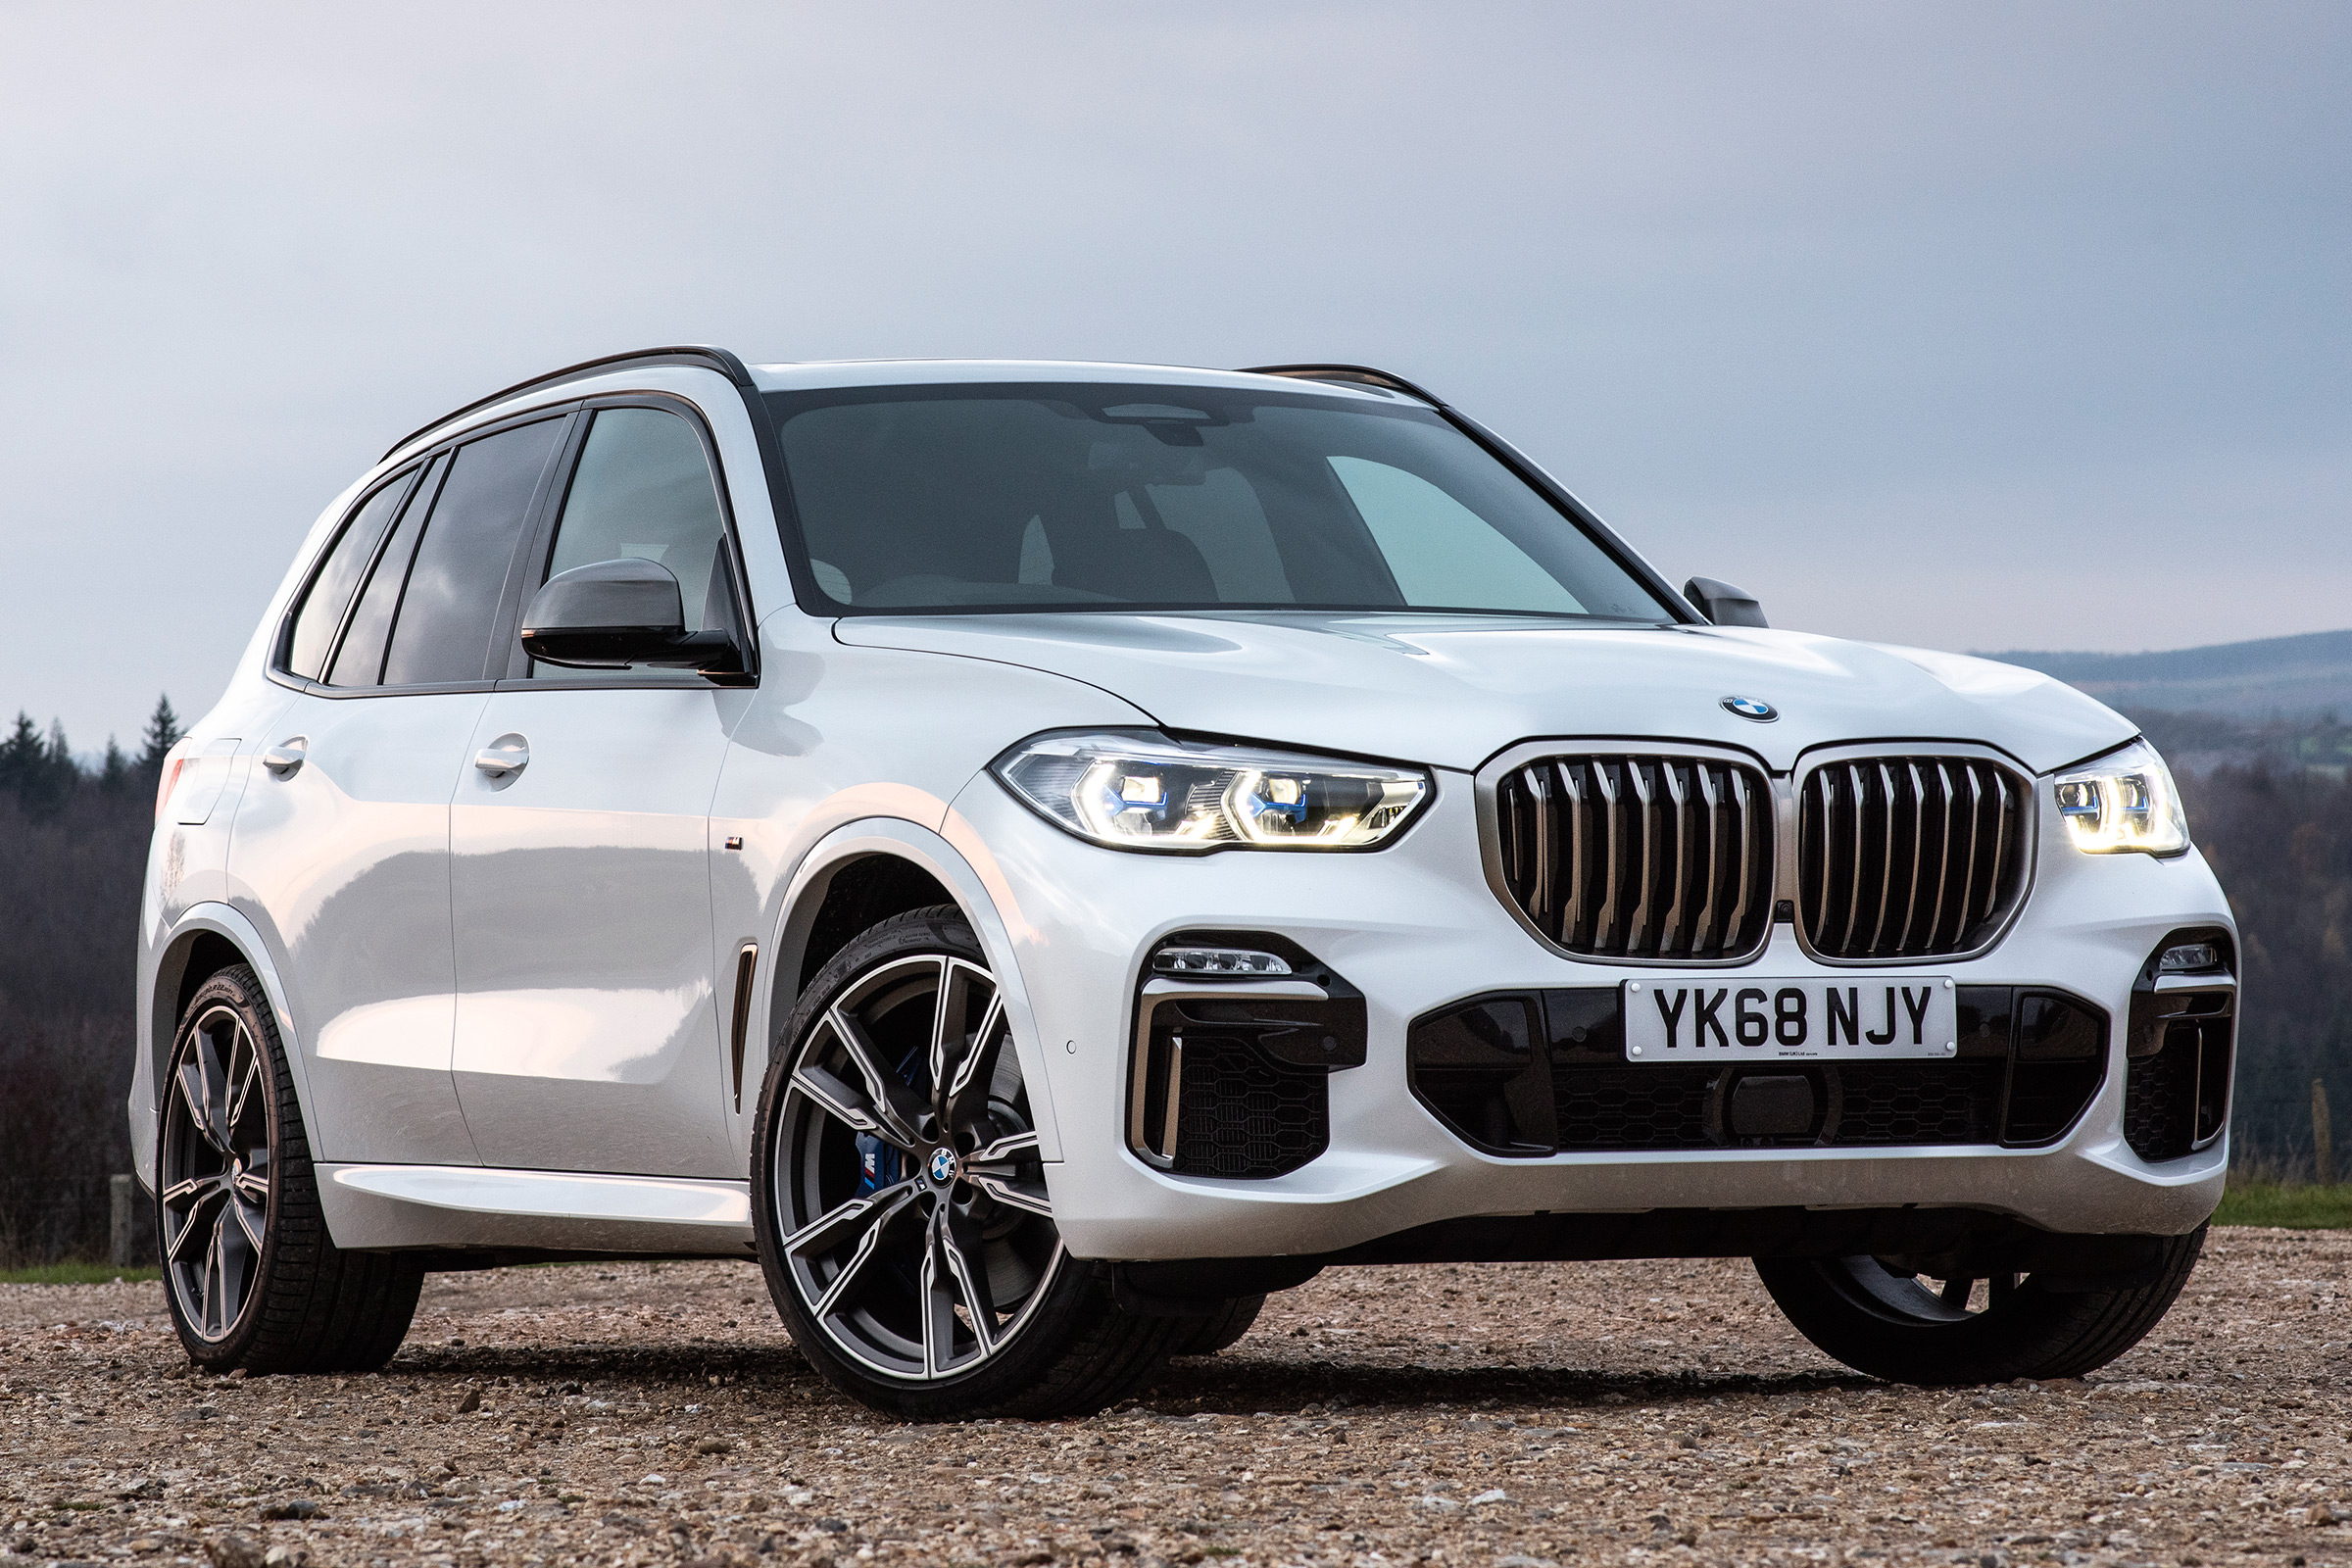 New 2019 Bmw X5 Full Details Pricing And Specifications Auto Express